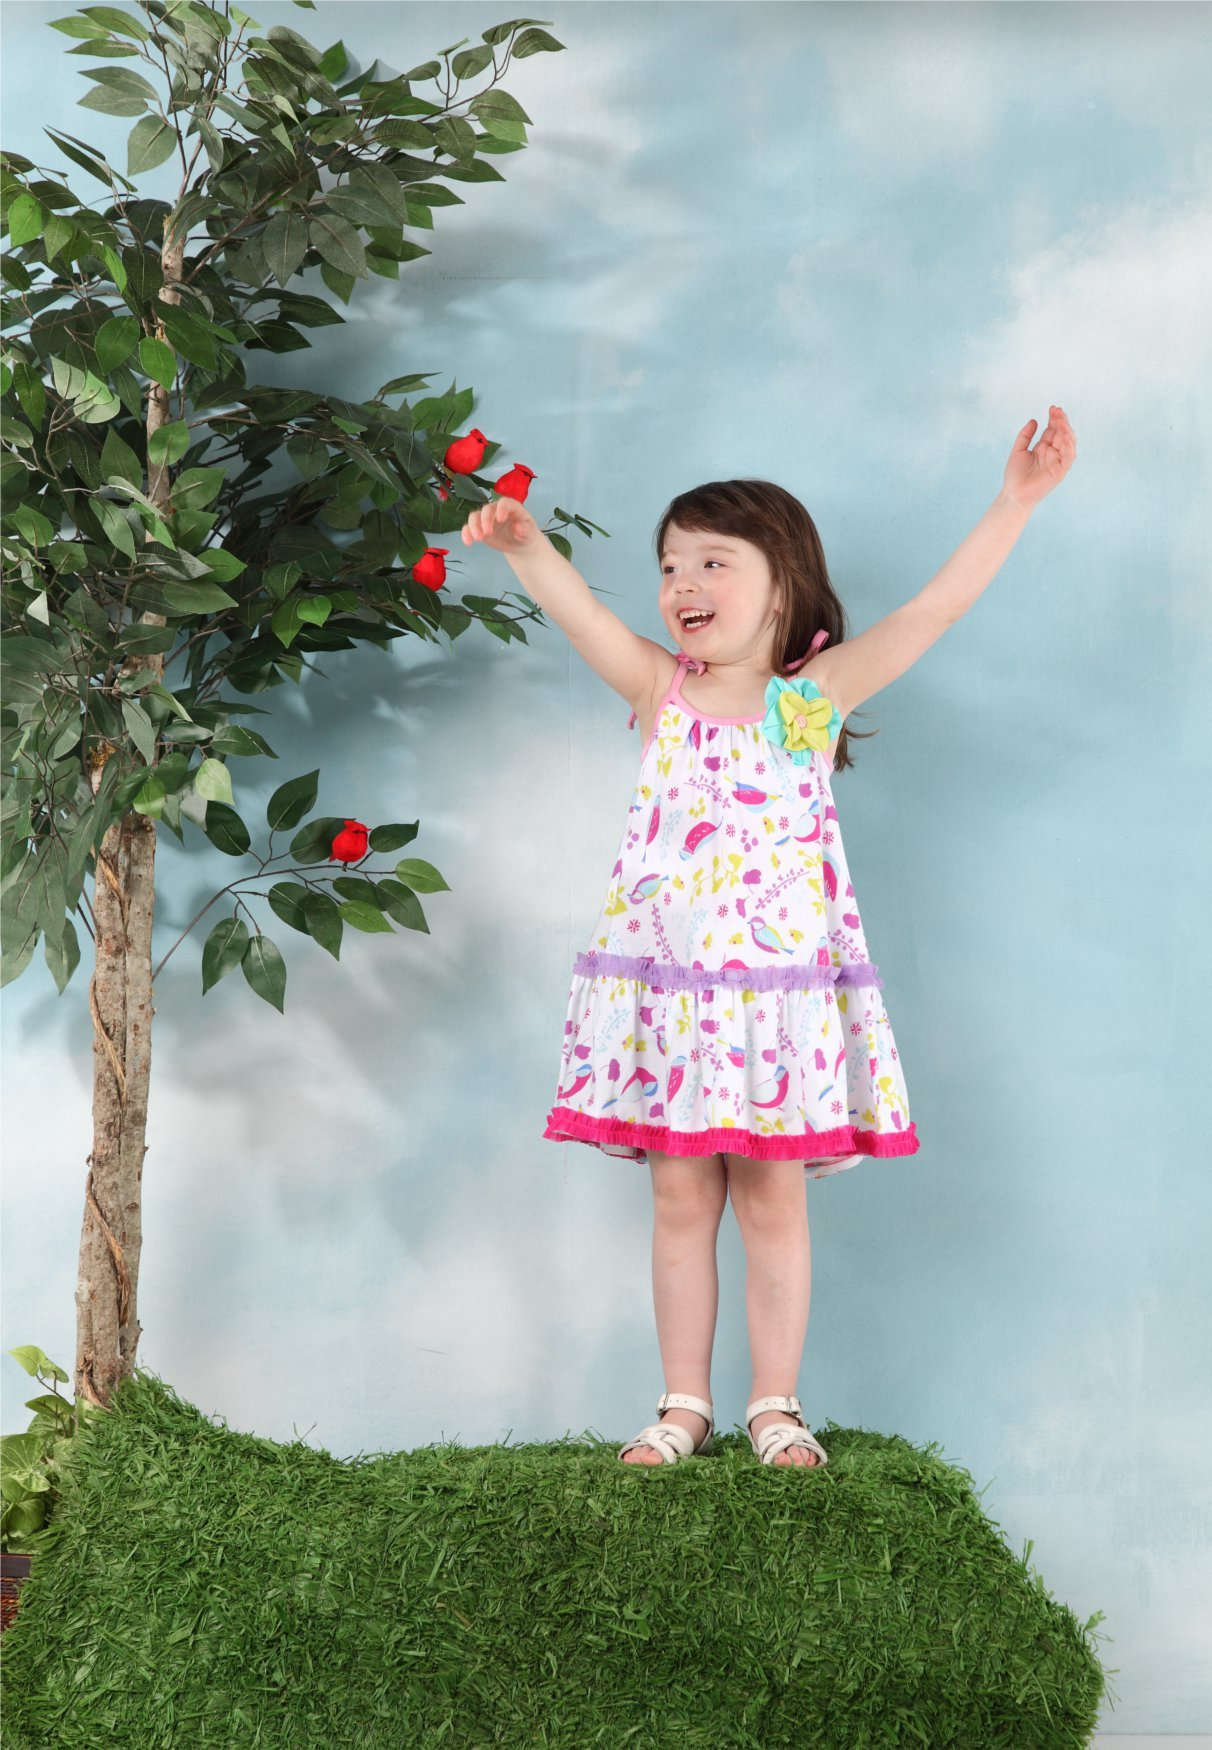 Tomorrow on zulily: Baby Lulu features darling sunhats, dresses and sets for your sweetie pie.